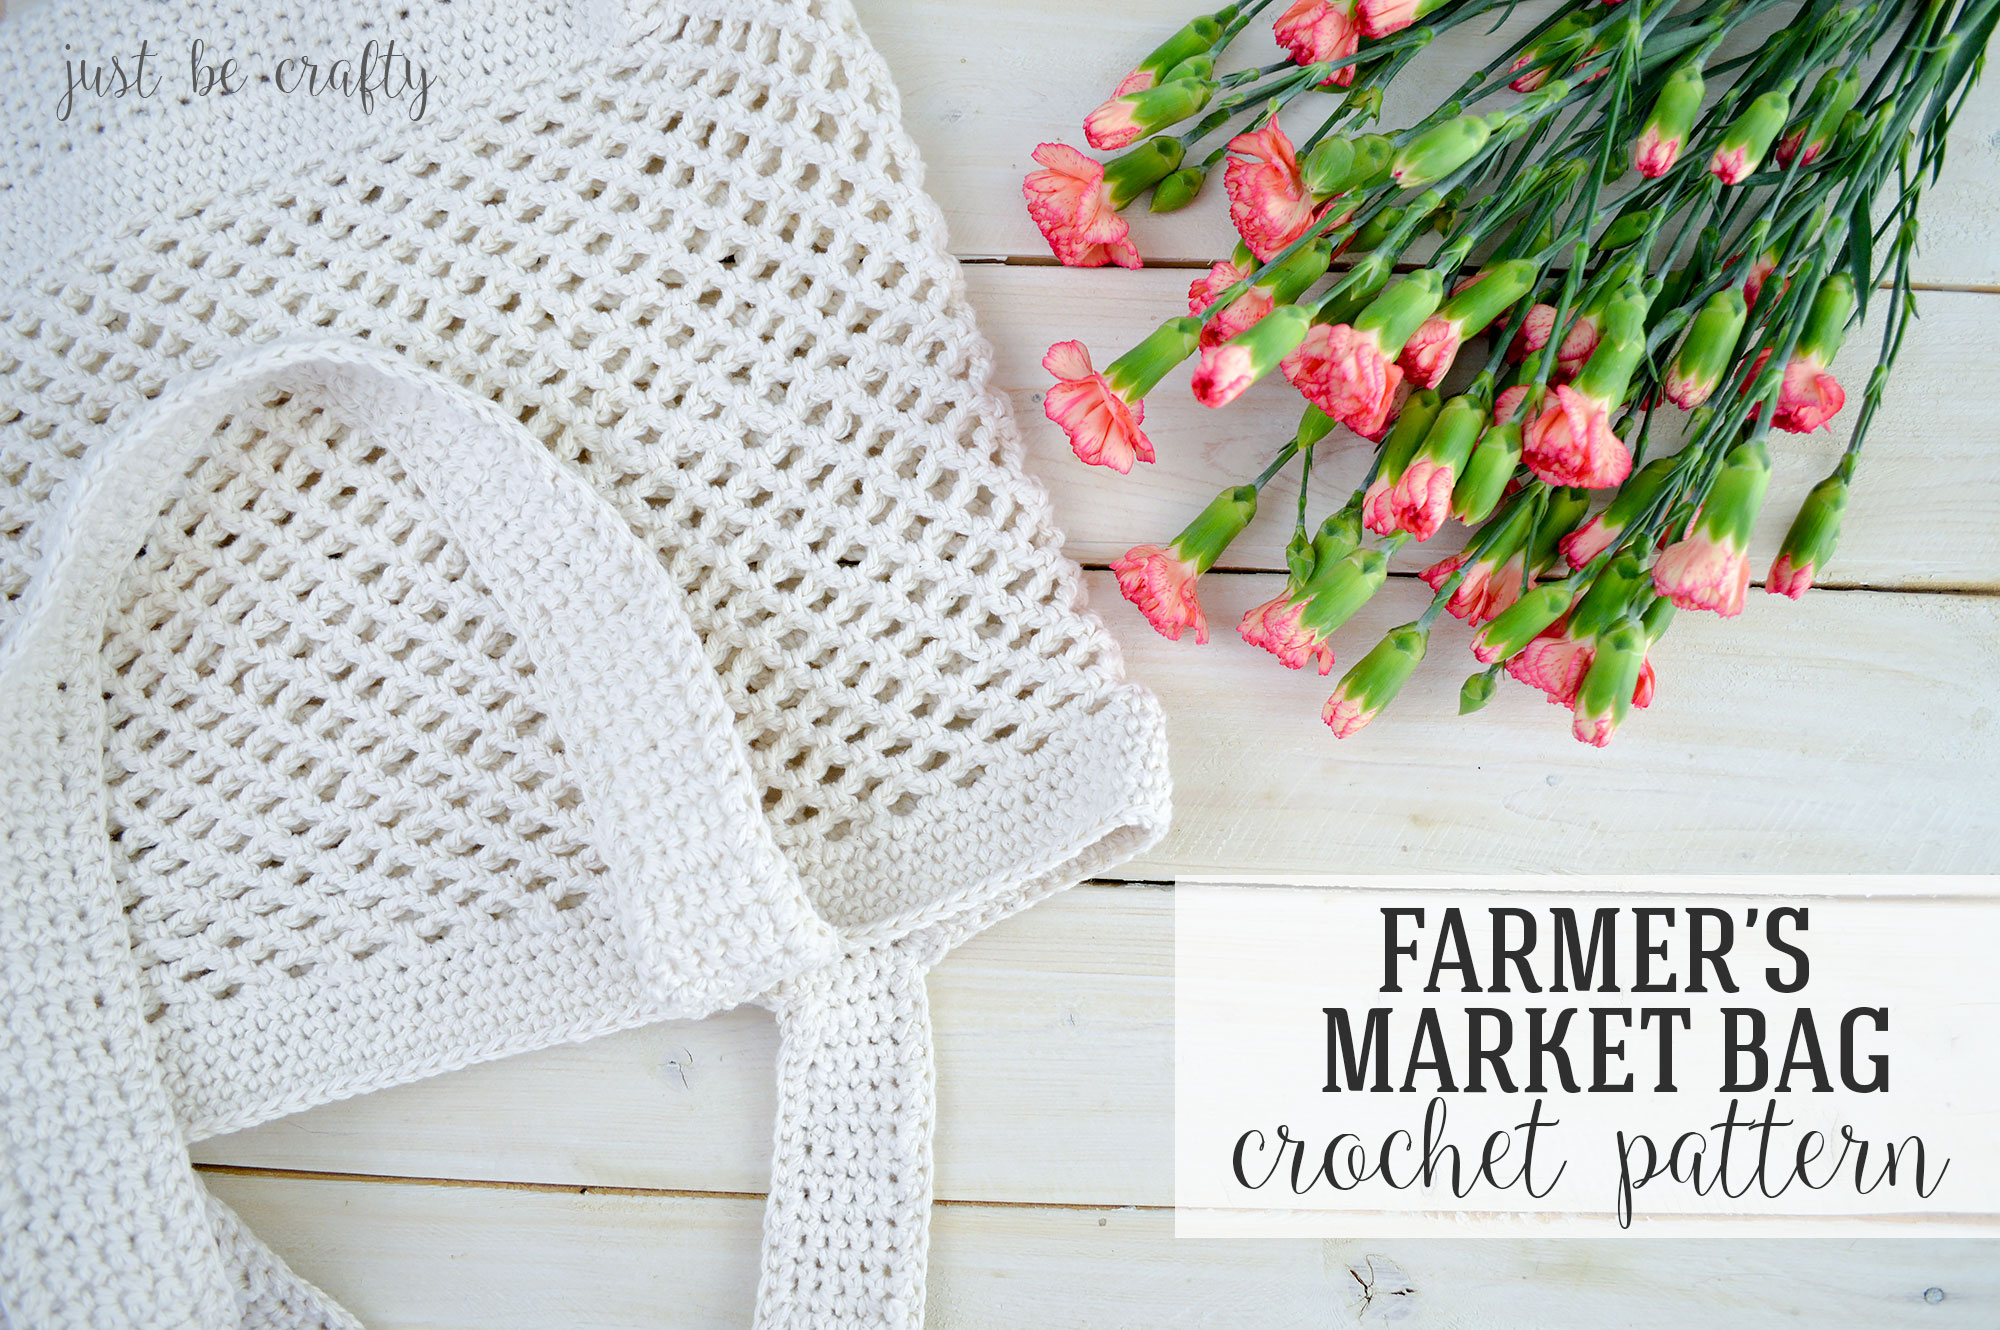 This Farmer S Market Bag Pattern Is Perfect For The Determined Beginner And Seasoned Crocheter Alike Made With 100 Cotton Yarn Will Be Your Best